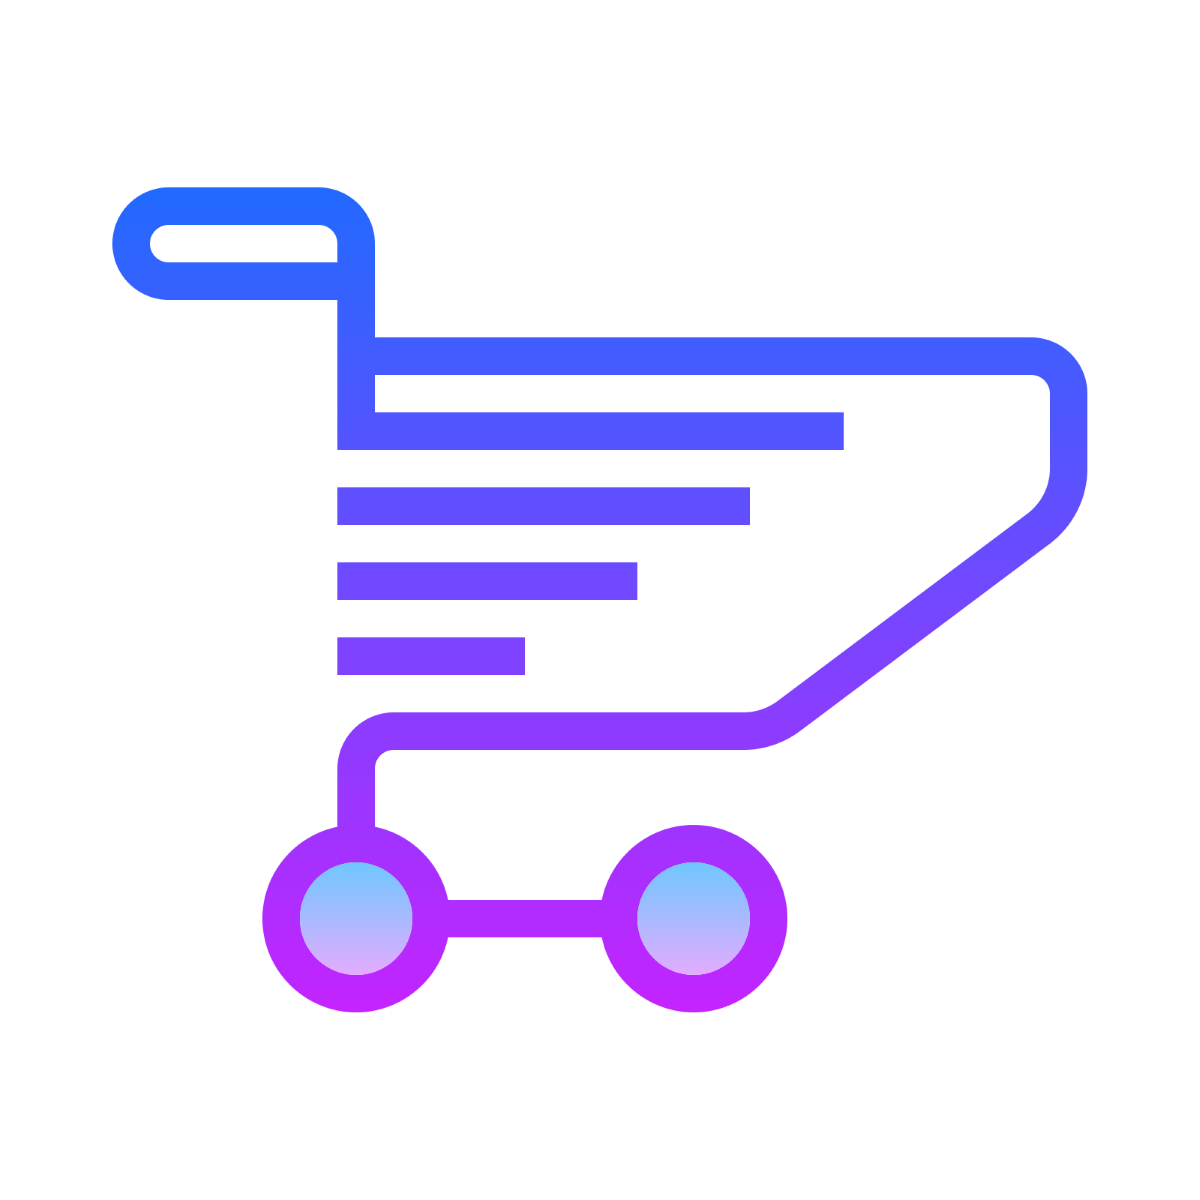 Hire Shopify Experts to integrate Add to Cart Animator + Shaker app into a Shopify store